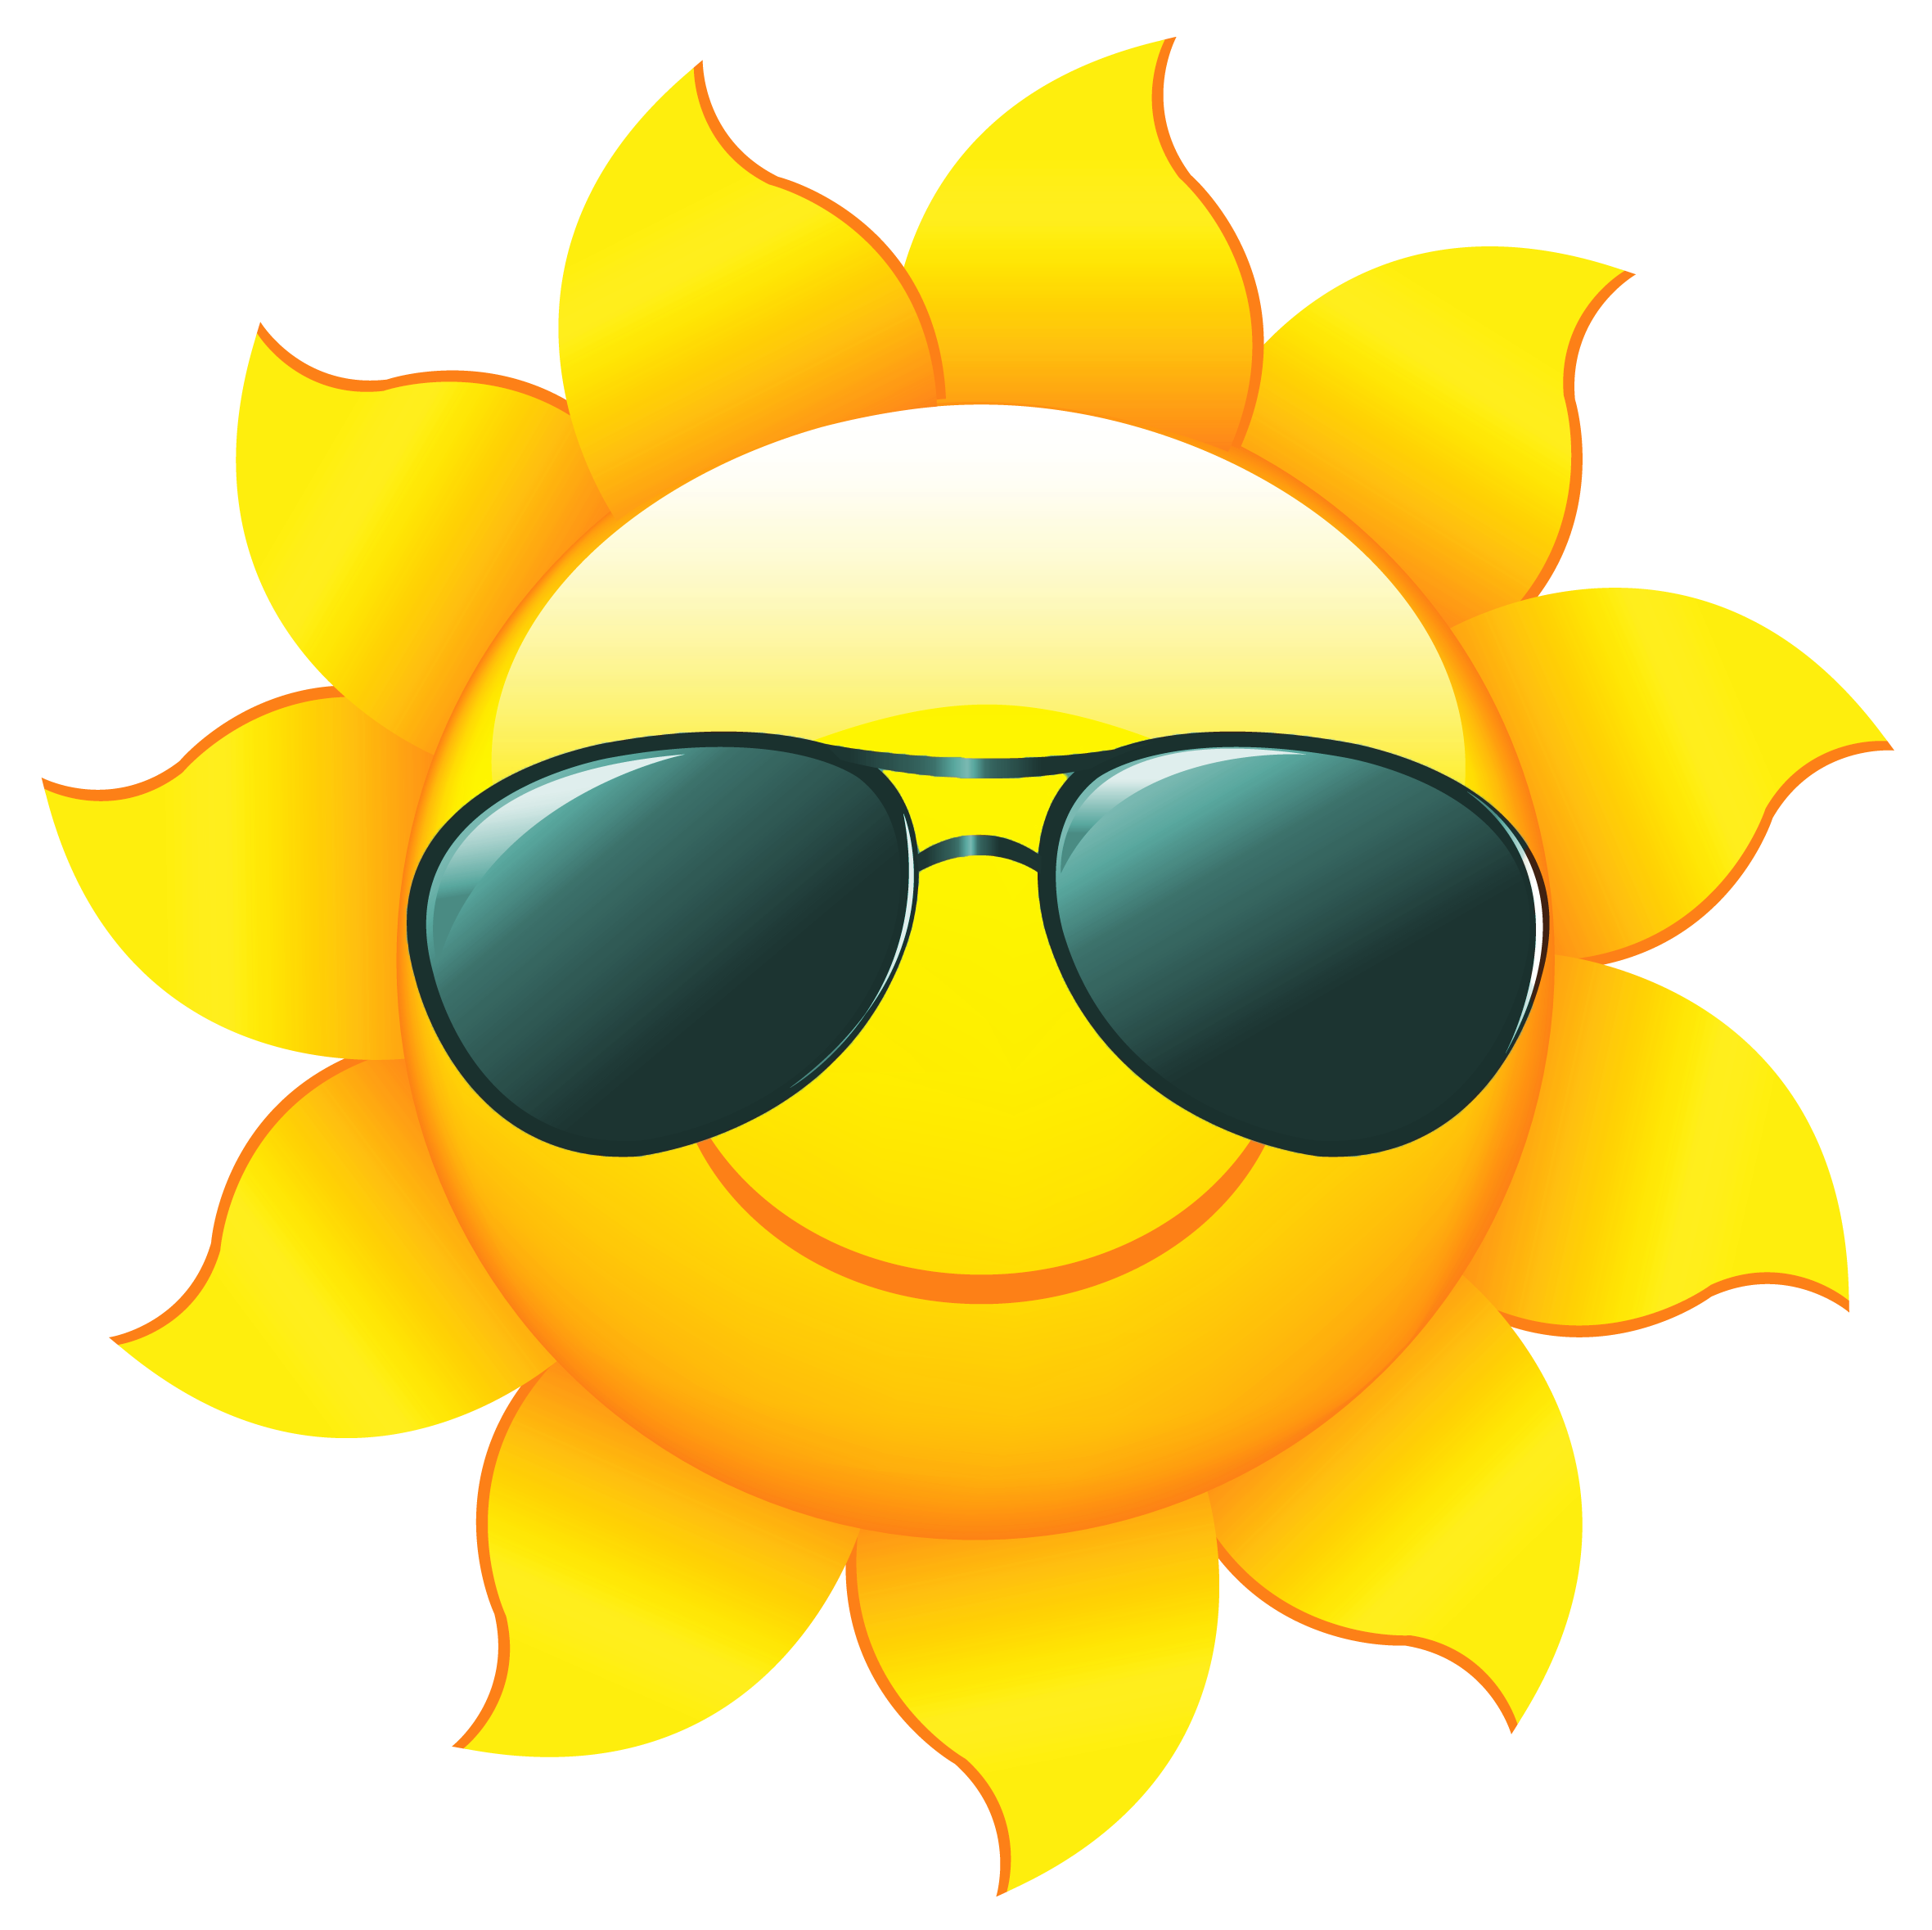 Sun too hot clipart picture library download Community Events Calendar 6.30-7.6.2018 - Town of Bedford picture library download